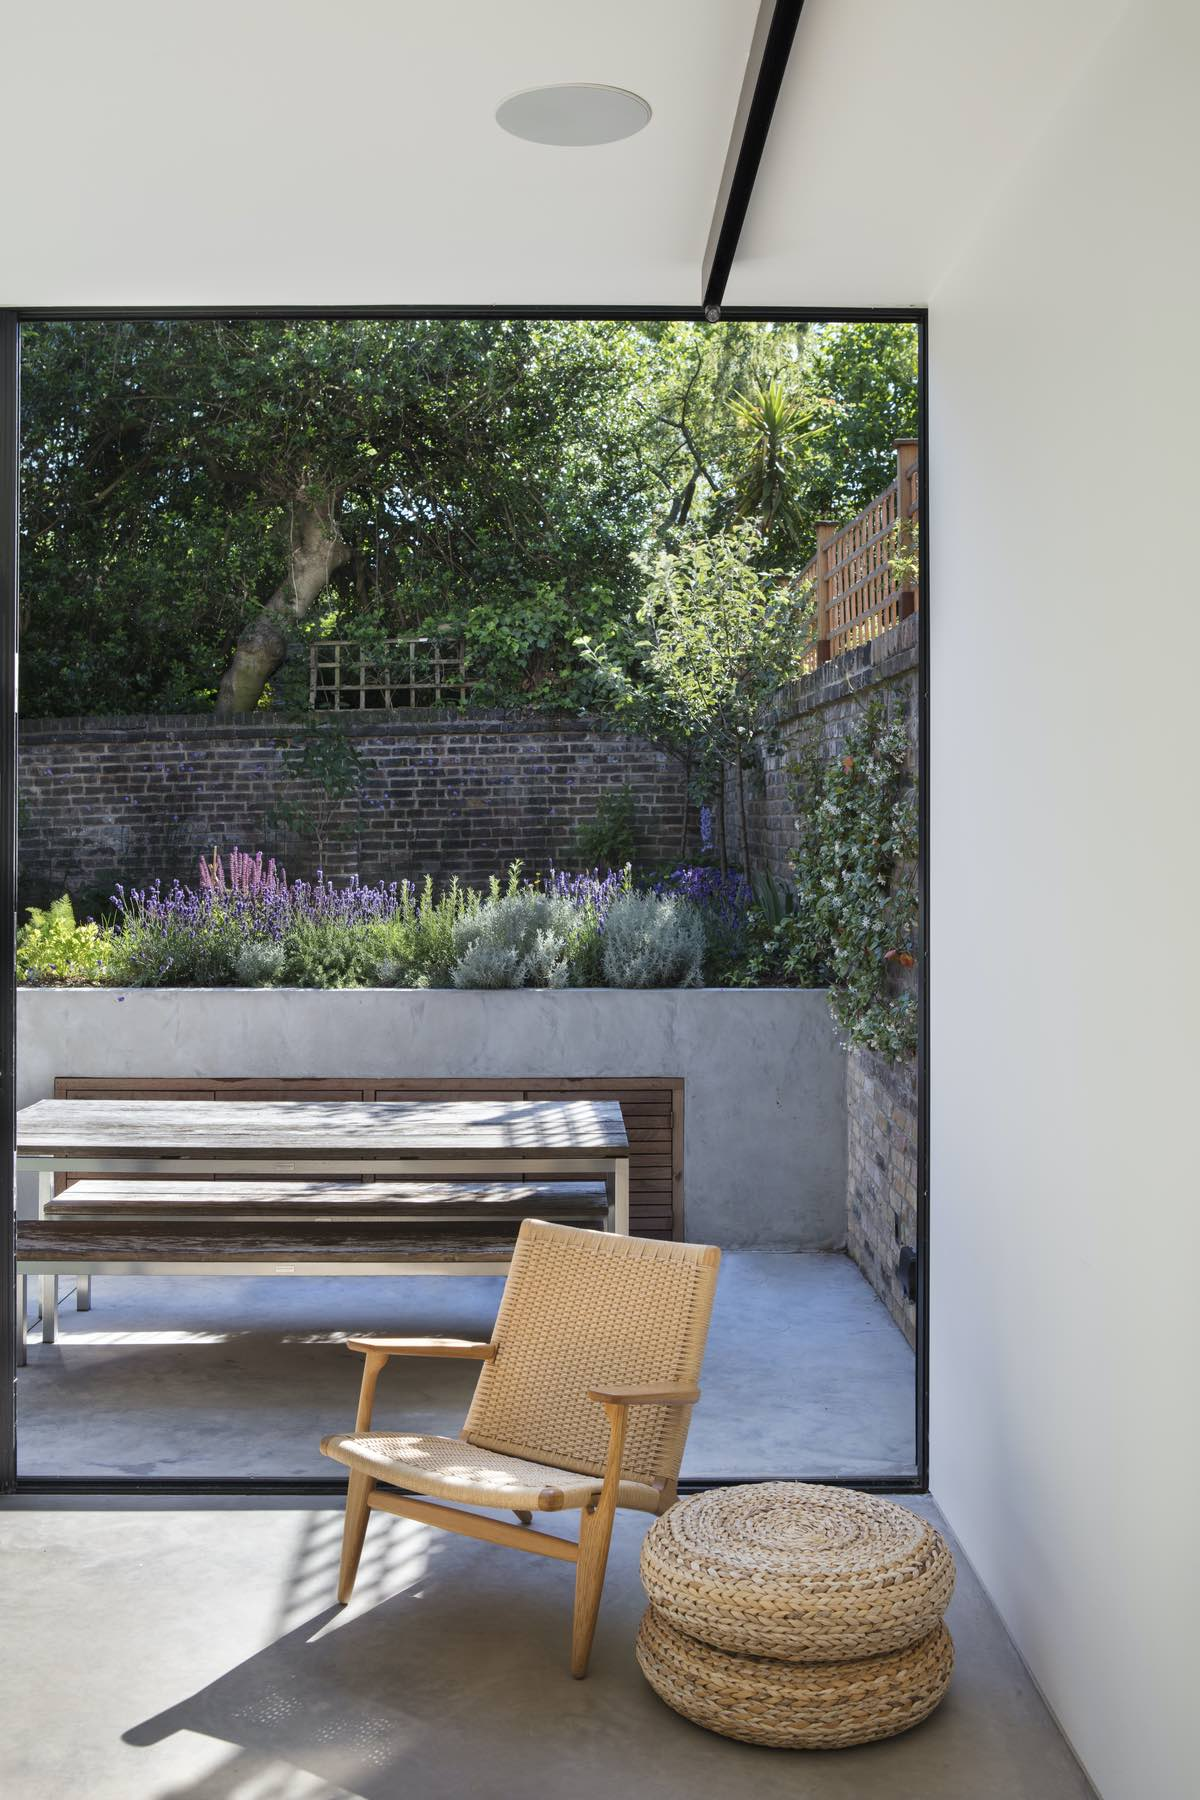 a modern wooden chair in the sitting area with beautiful garden view